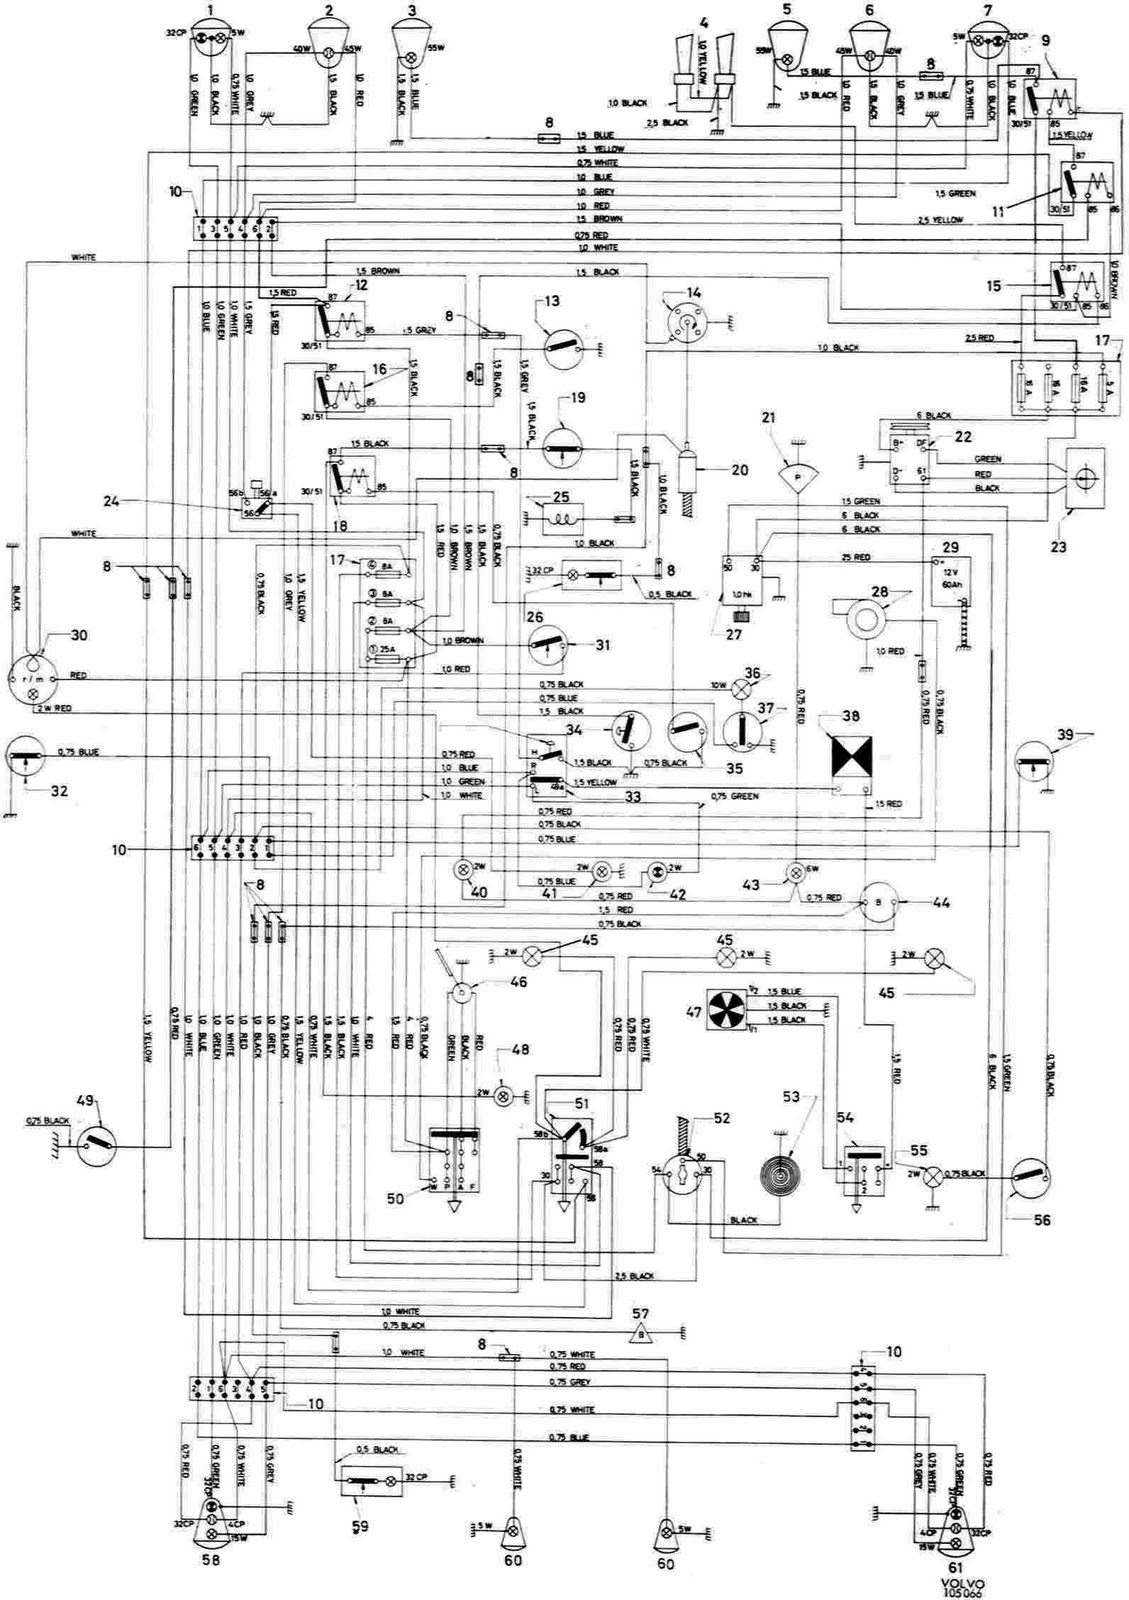 fuse box diagram for 2006 saab 9 3  saab  wiring diagram images